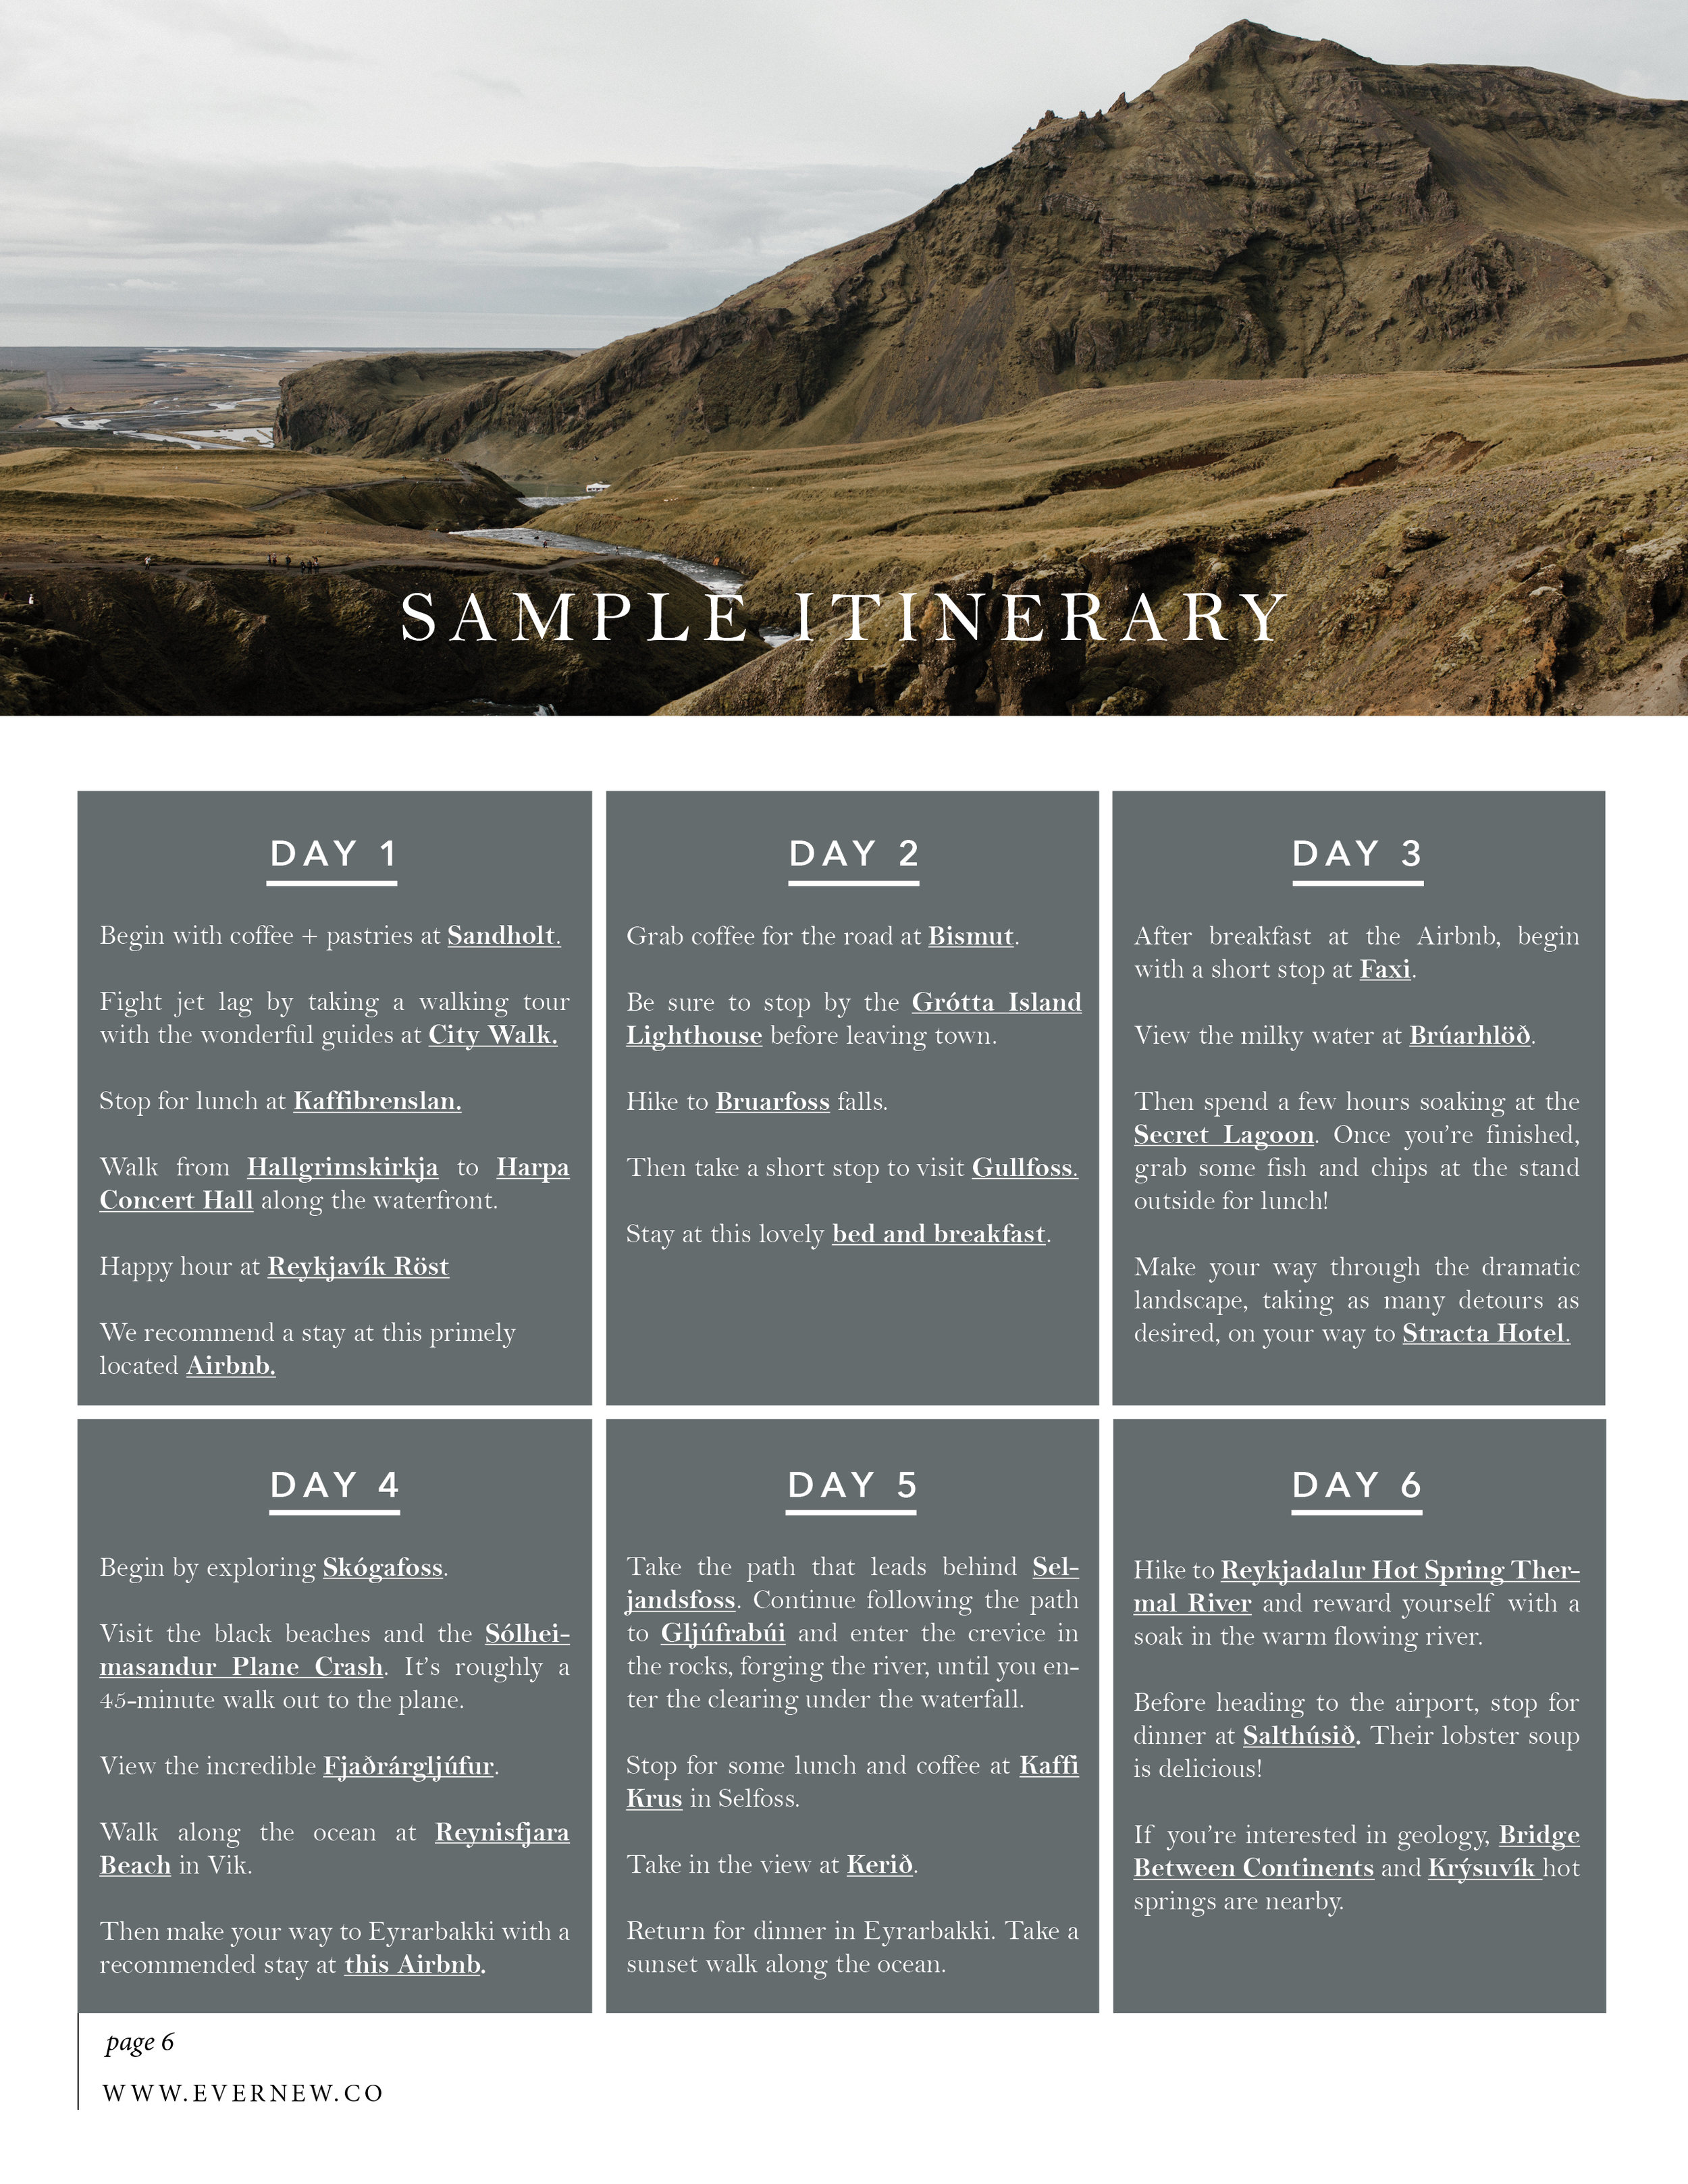 Evernew - Iceland Guide6.jpg